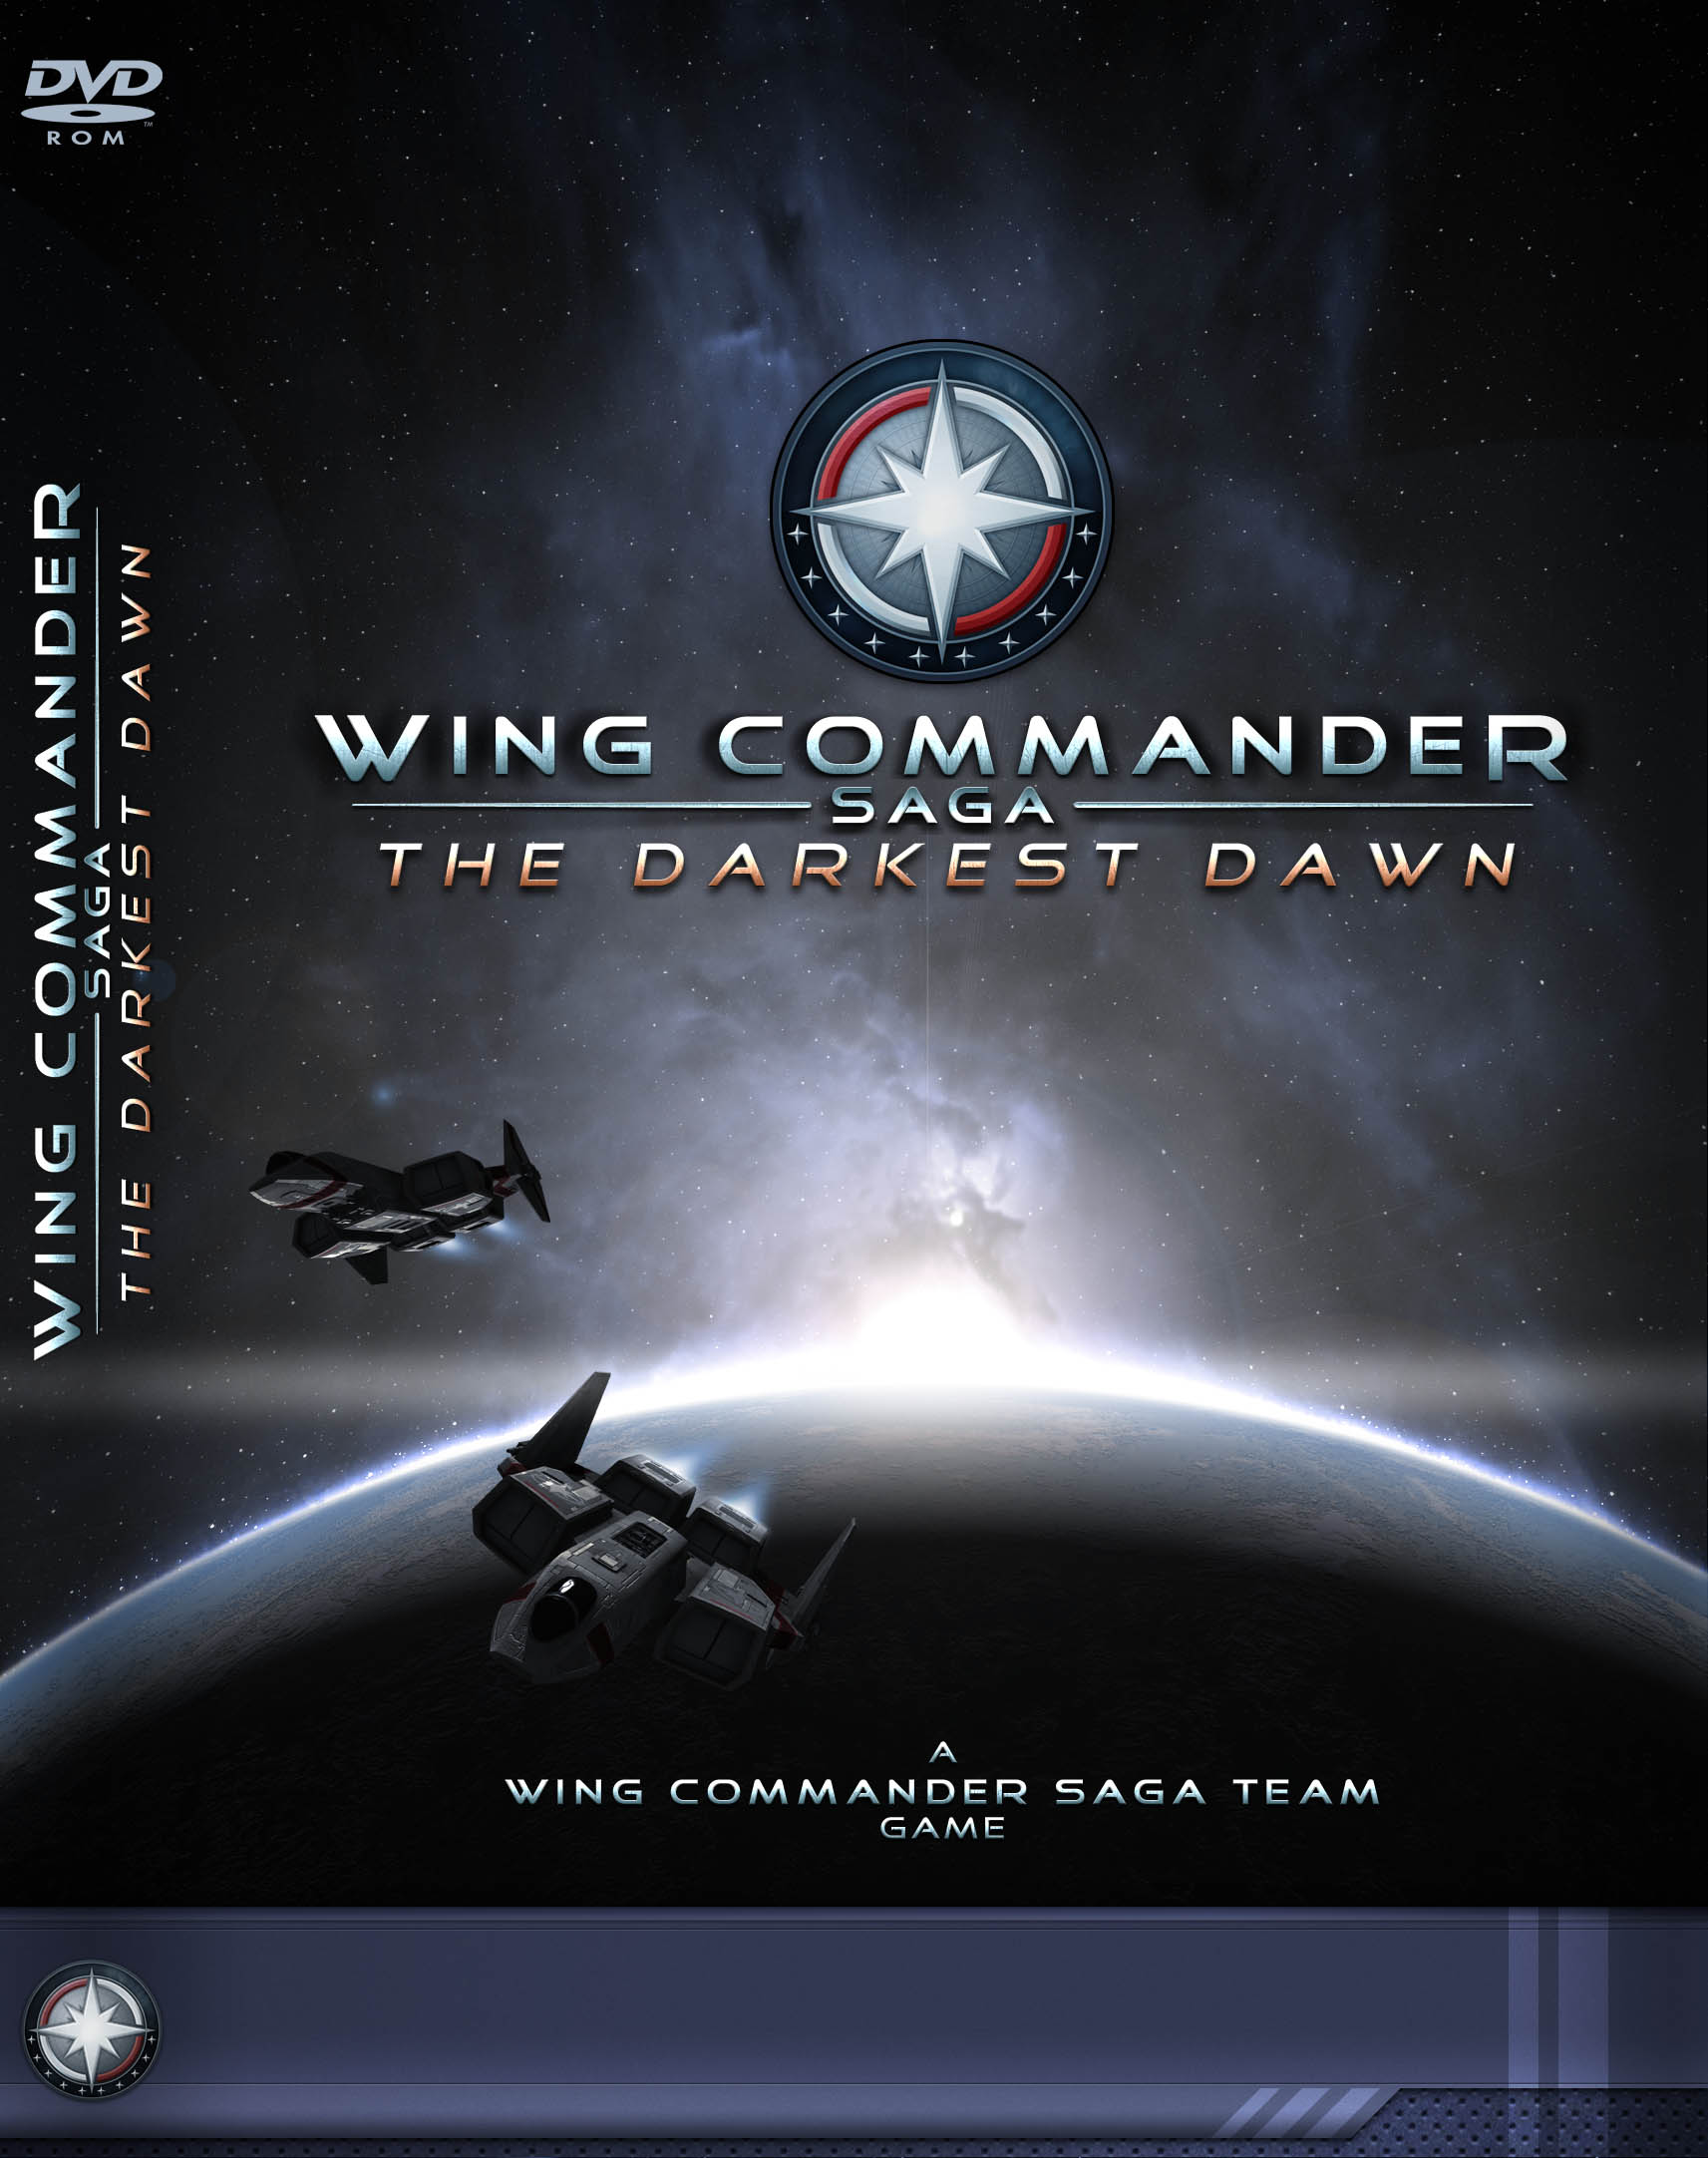 Wc saga prologue released! Wing commander cic.